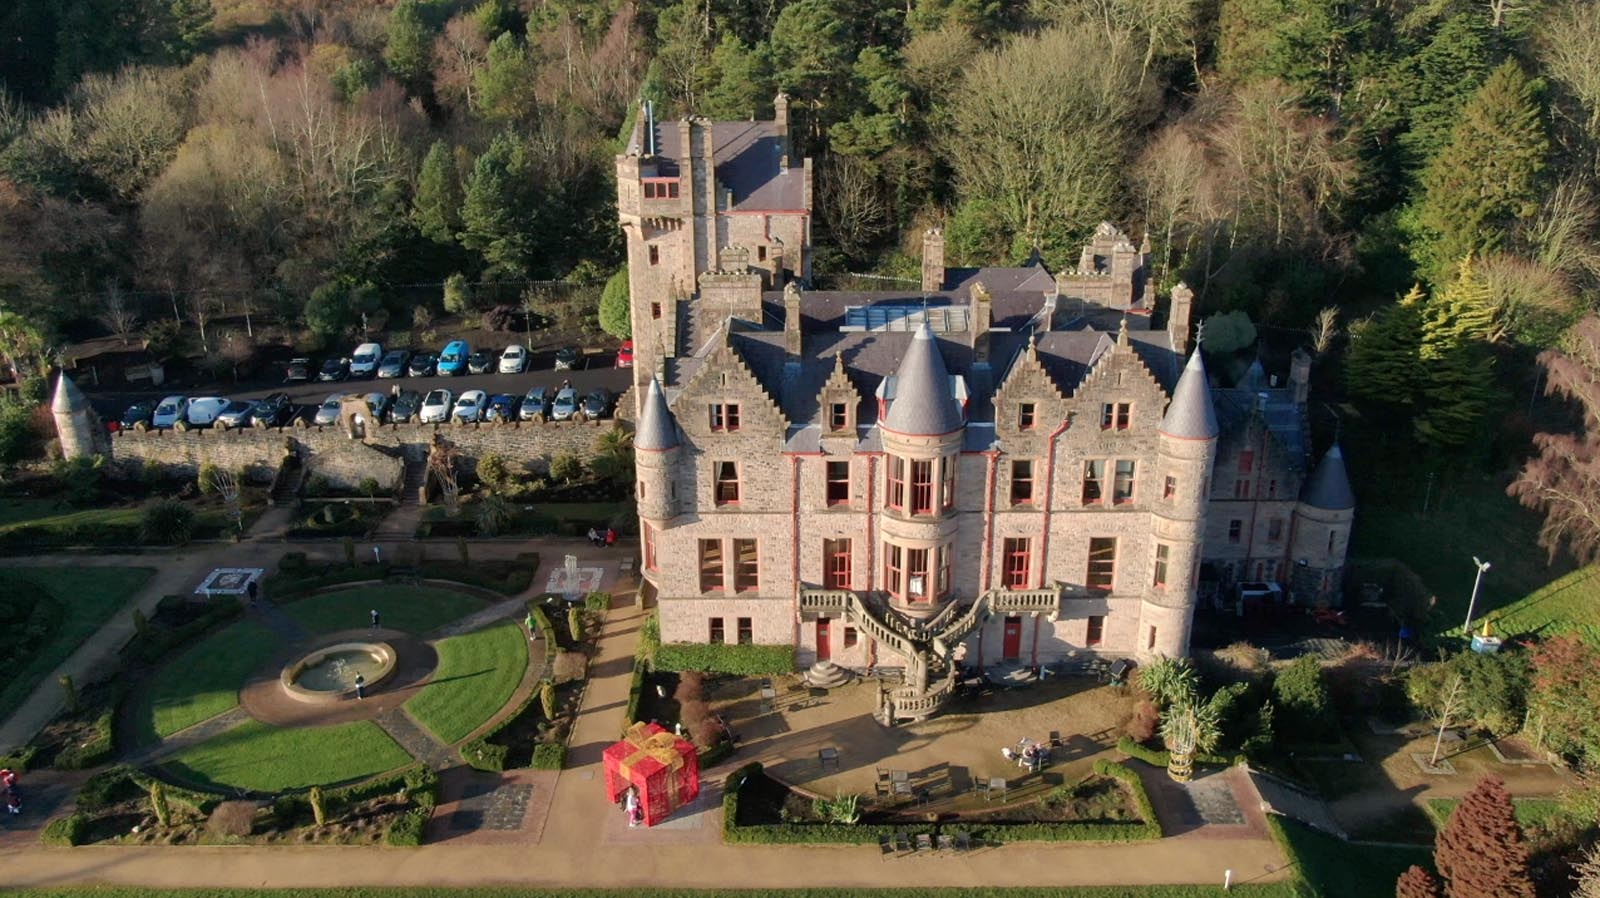 Aerial drone photography and video production services Dublin and Ireland portfolio - screenshot 5 of Belfast Castle 2 video